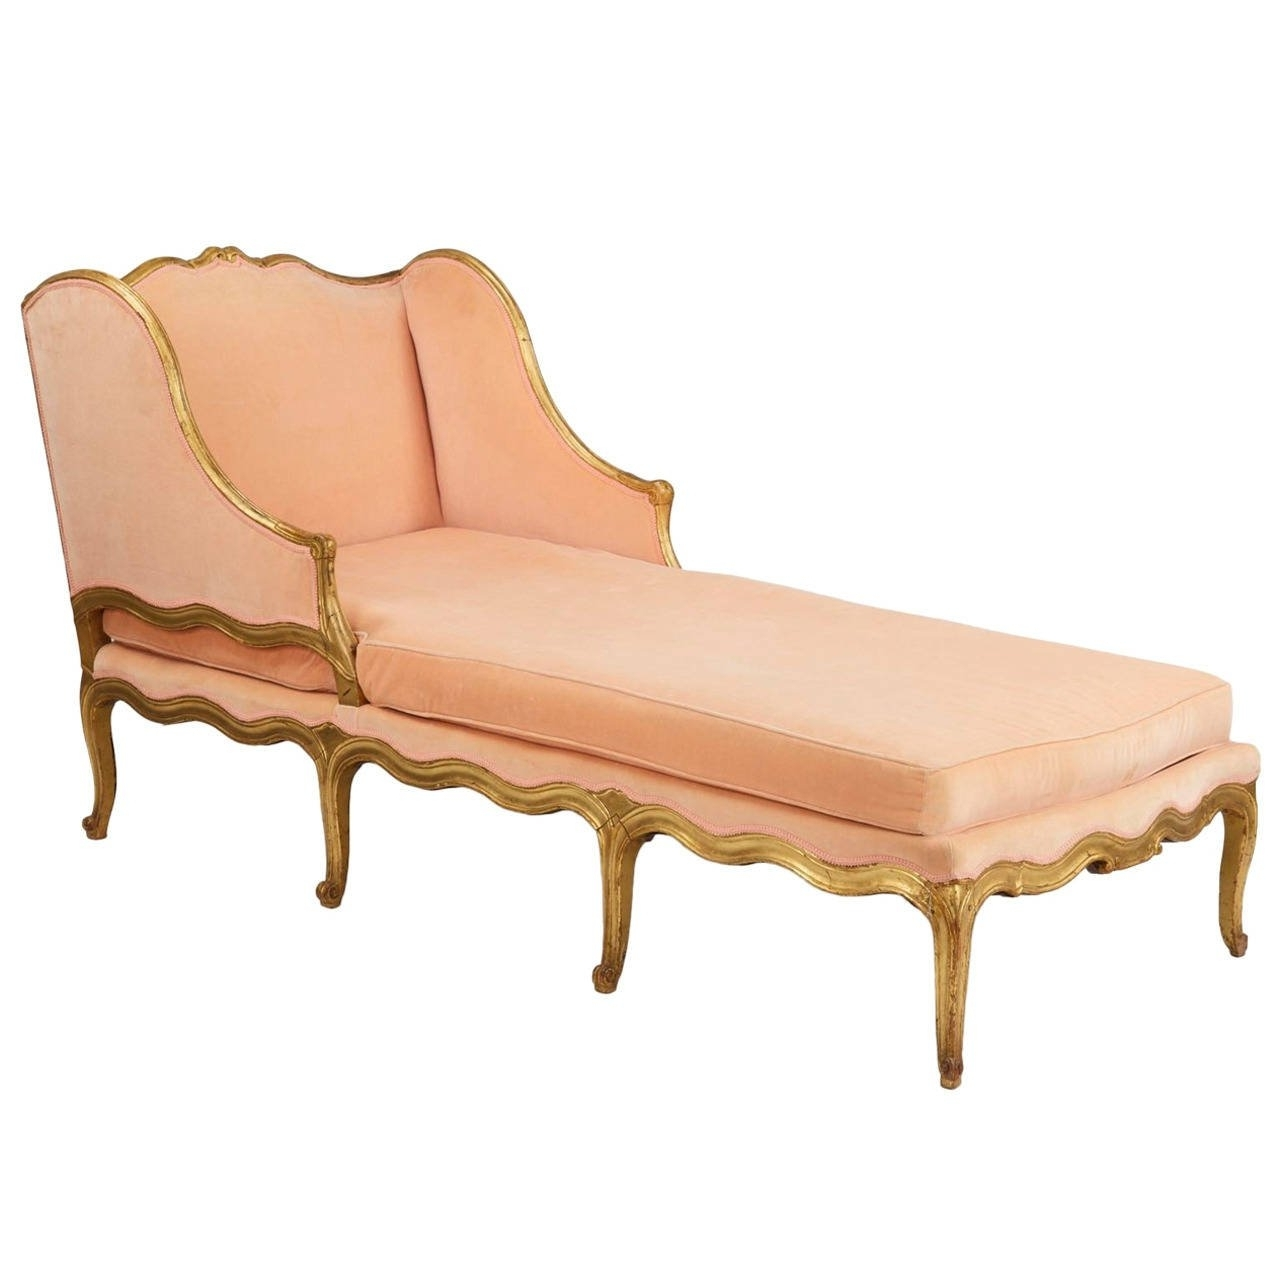 French Louis Xv Style Giltwood Antique Chaise Longue Lounge Settee For Most Recent Antique Chaise Lounges (View 9 of 15)